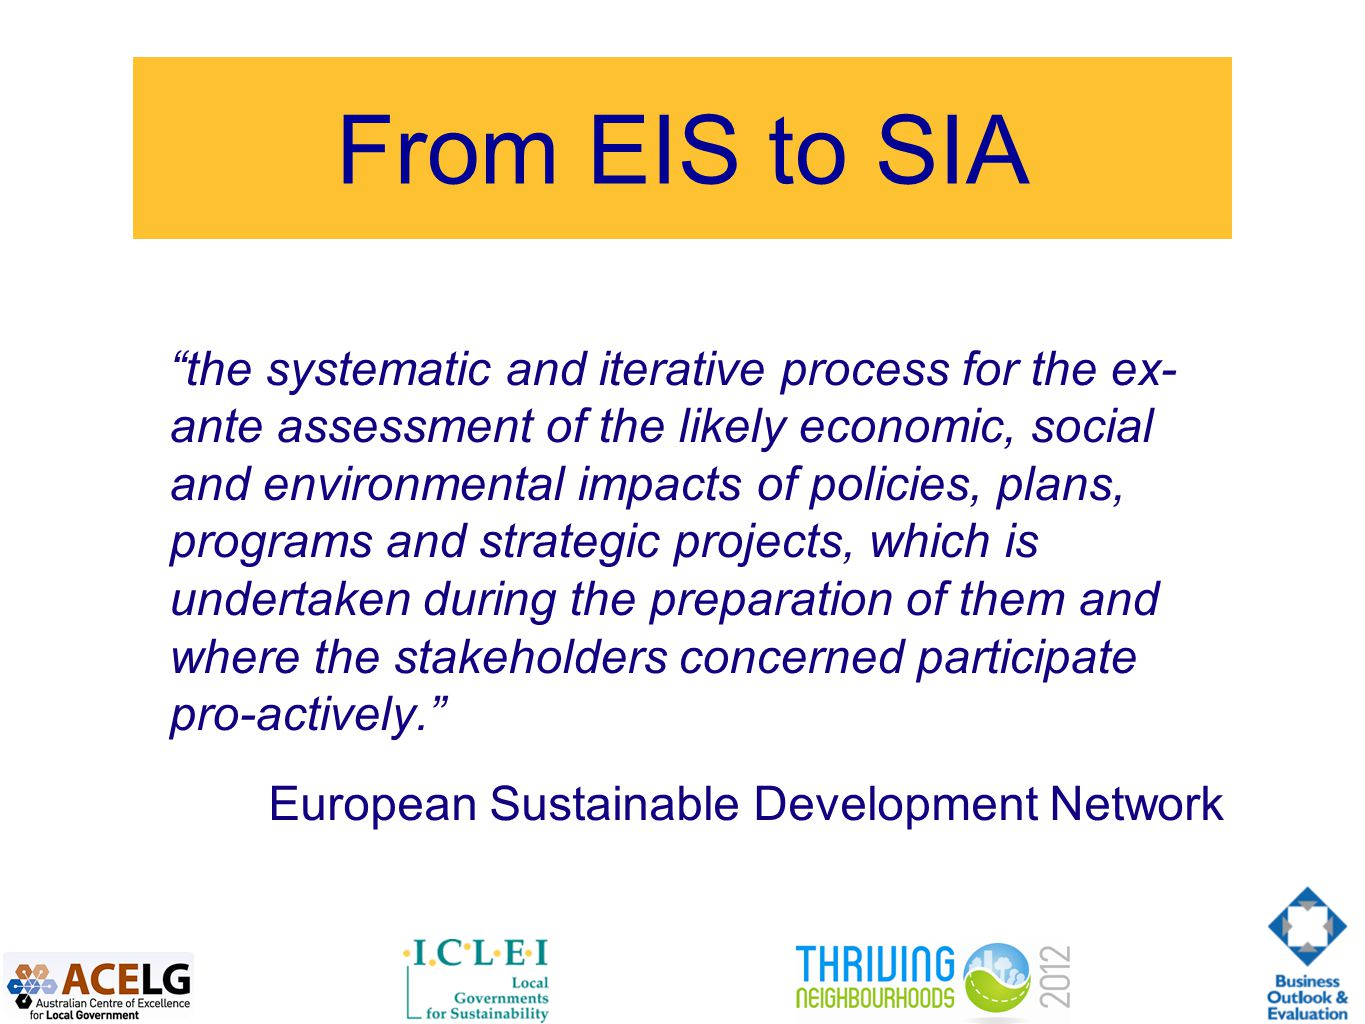 From EIS to SIA the systematic and iterative process for the ex- ante assessment of the likely economic, social and environmental impacts of policies, plans, programs and strategic projects, which is undertaken during the preparation of them and where the stakeholders concerned participate pro-actively. European Sustainable Development Network